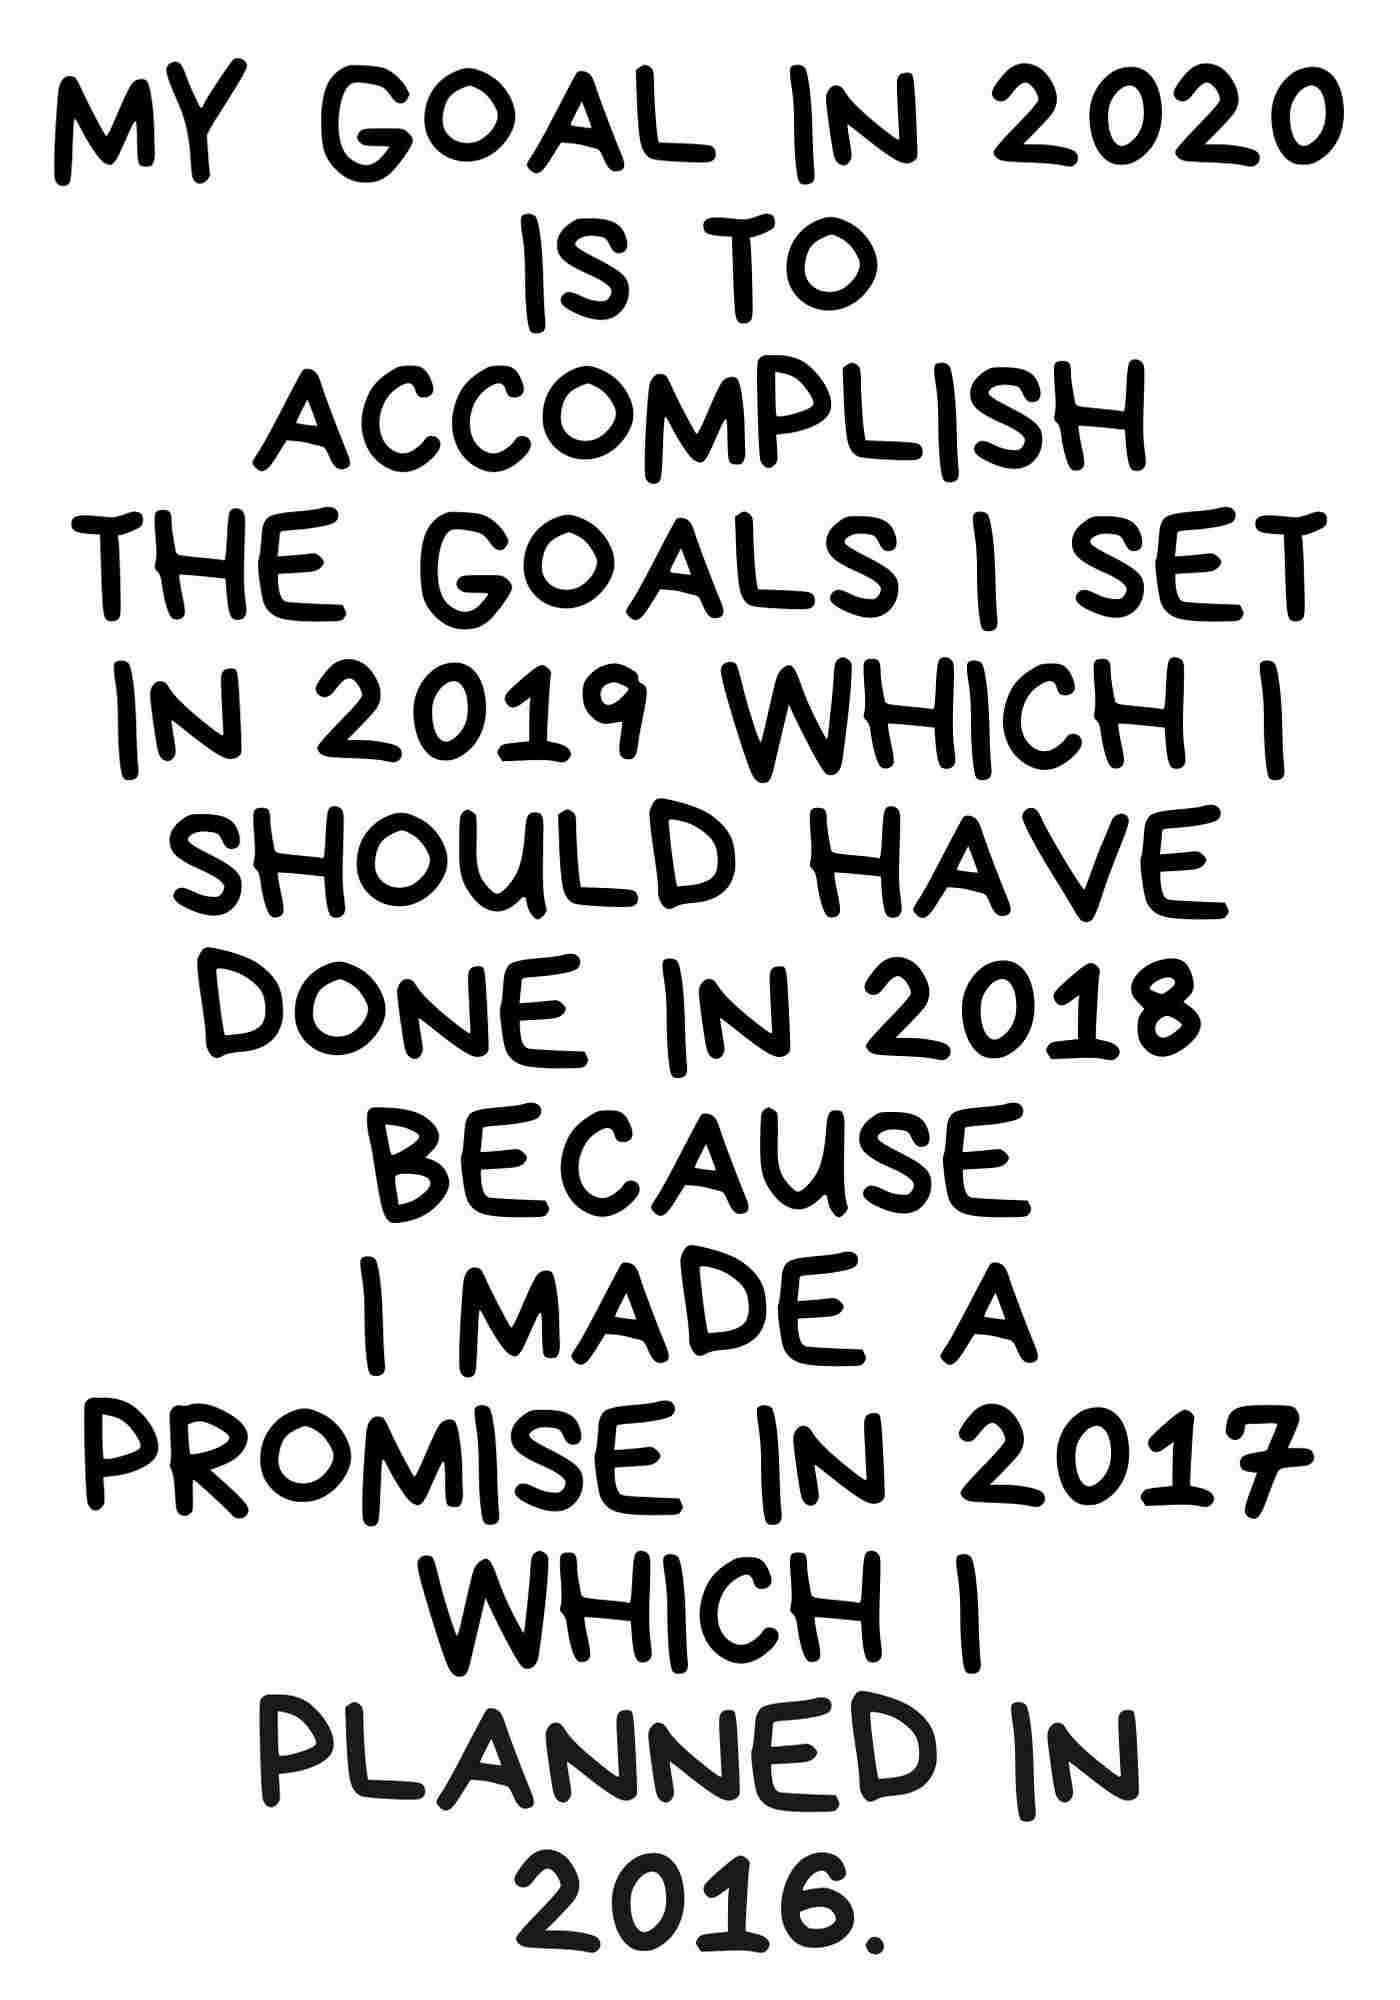 New Year Goals Funny Hilarious 2020 Messages New Year Quotes Funny Hilarious Funny Quotes Quotes About New Year